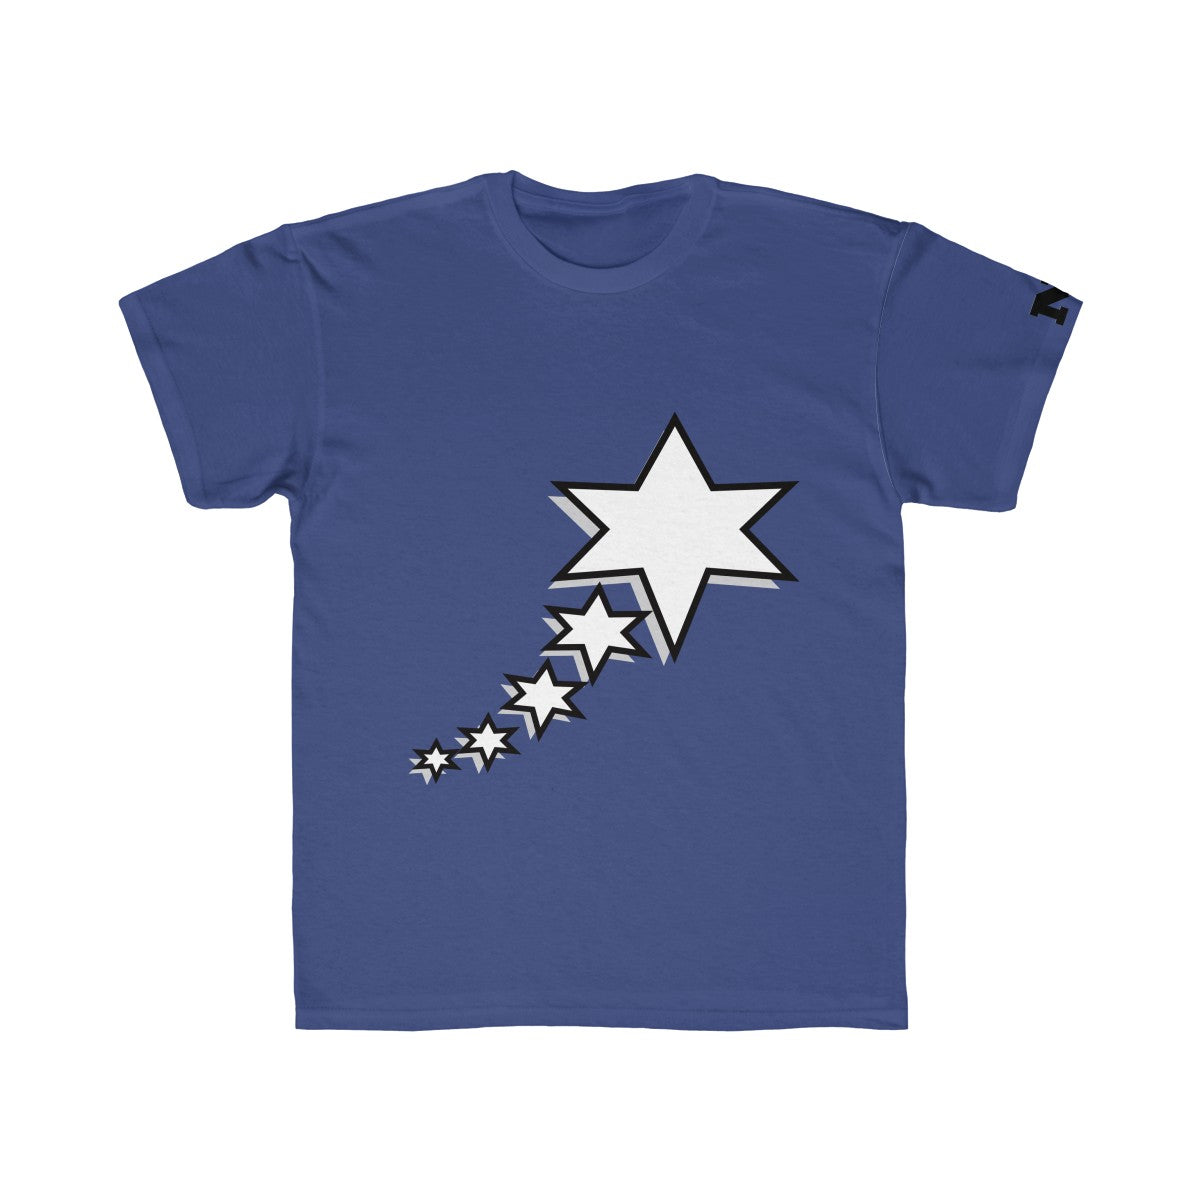 Kids Regular Fit Tee - 6 Points 5 Stars (White)